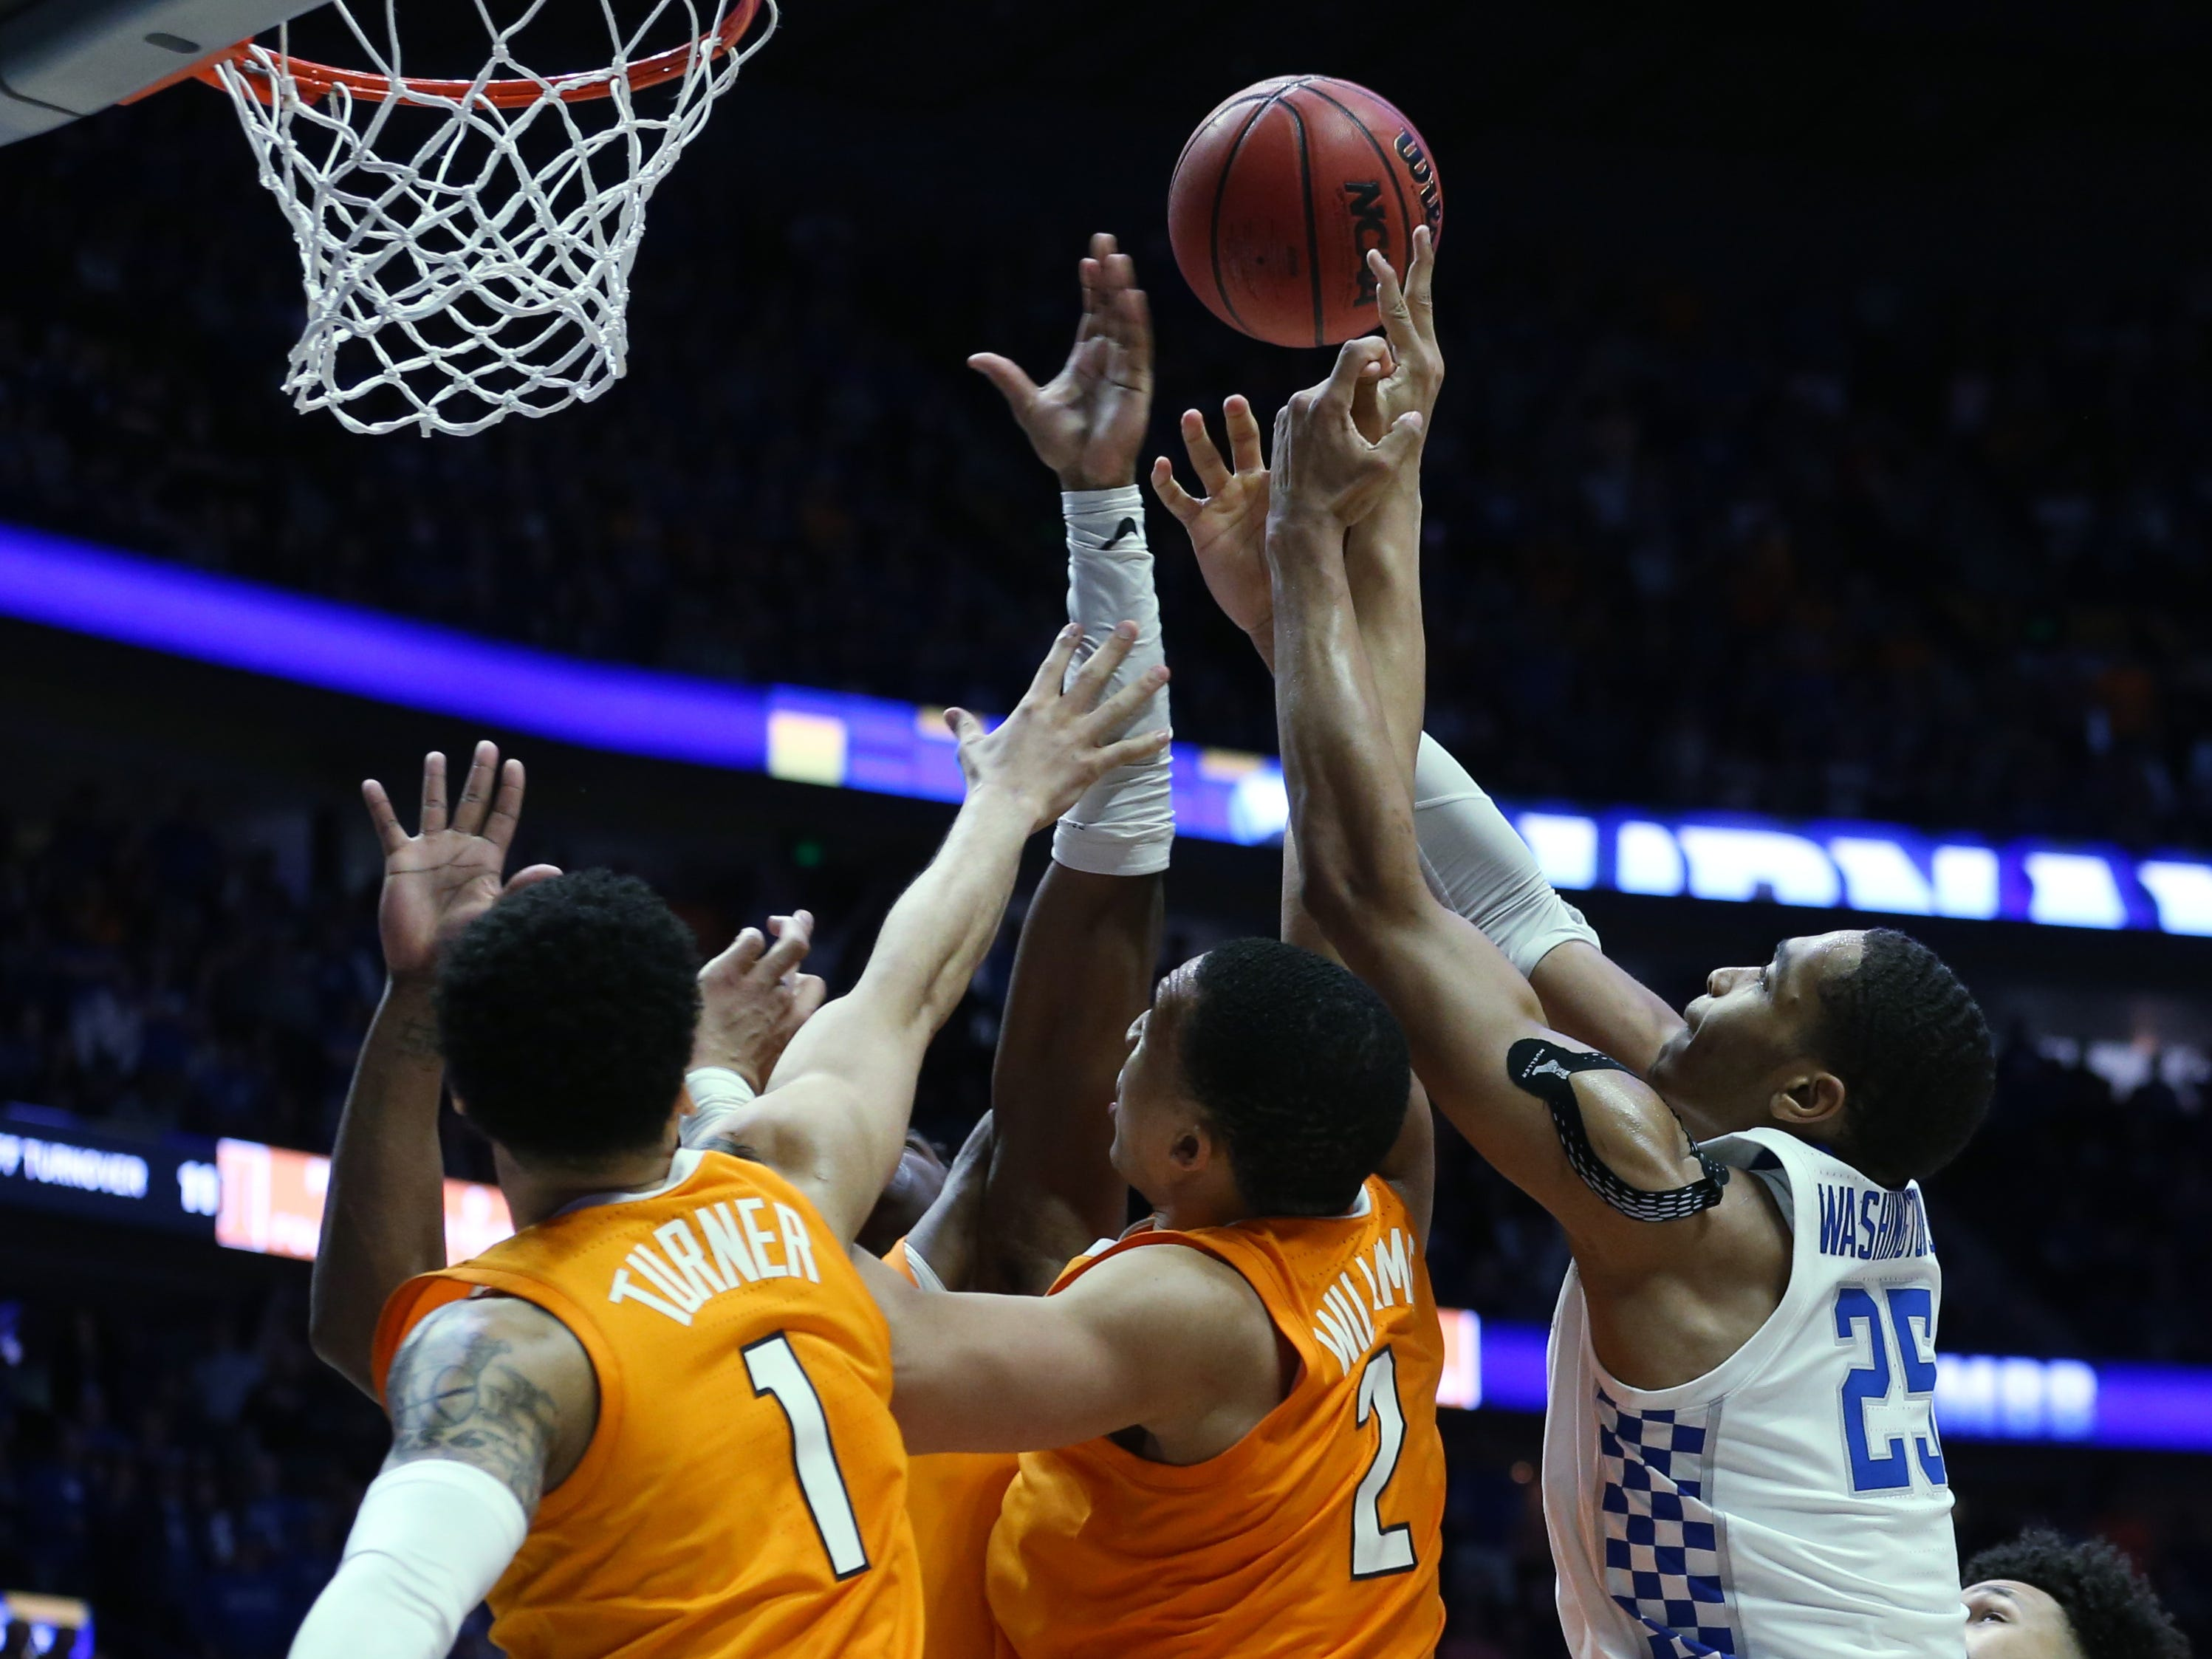 Kentucky forward PJ Washington (25), Tennessee guard Lamonte Turner (1) and Tennessee forward Grant Williams (2) try to get a rebound during the second half of the SEC Men's Basketball Tournament game at Bridgestone Arena in Nashville, Tenn., Saturday, March 16, 2019.